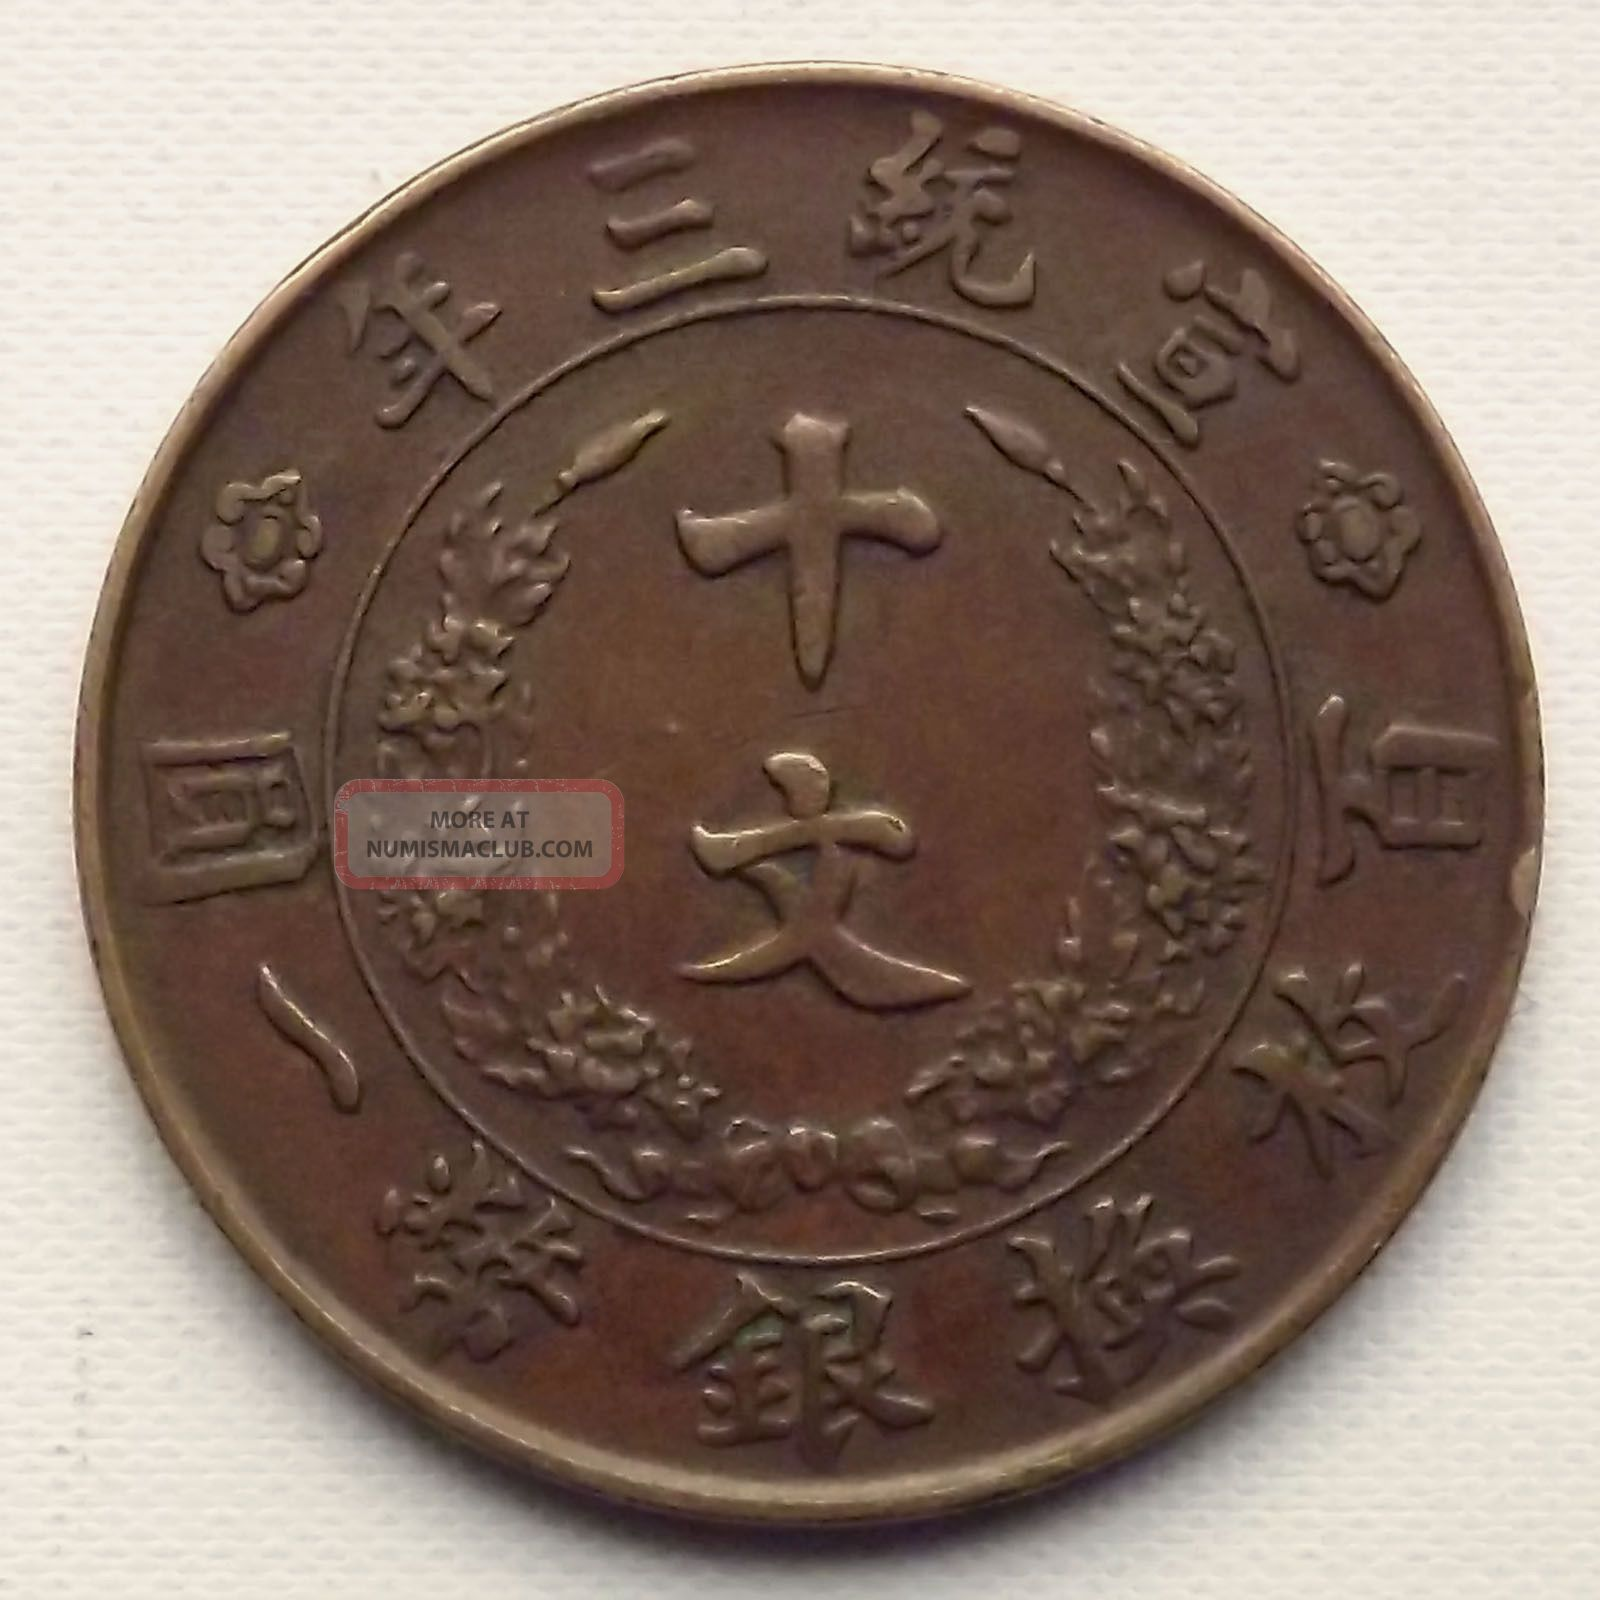 China Empire Qing Dynasty 10 Cash Copper Coin Very Rare